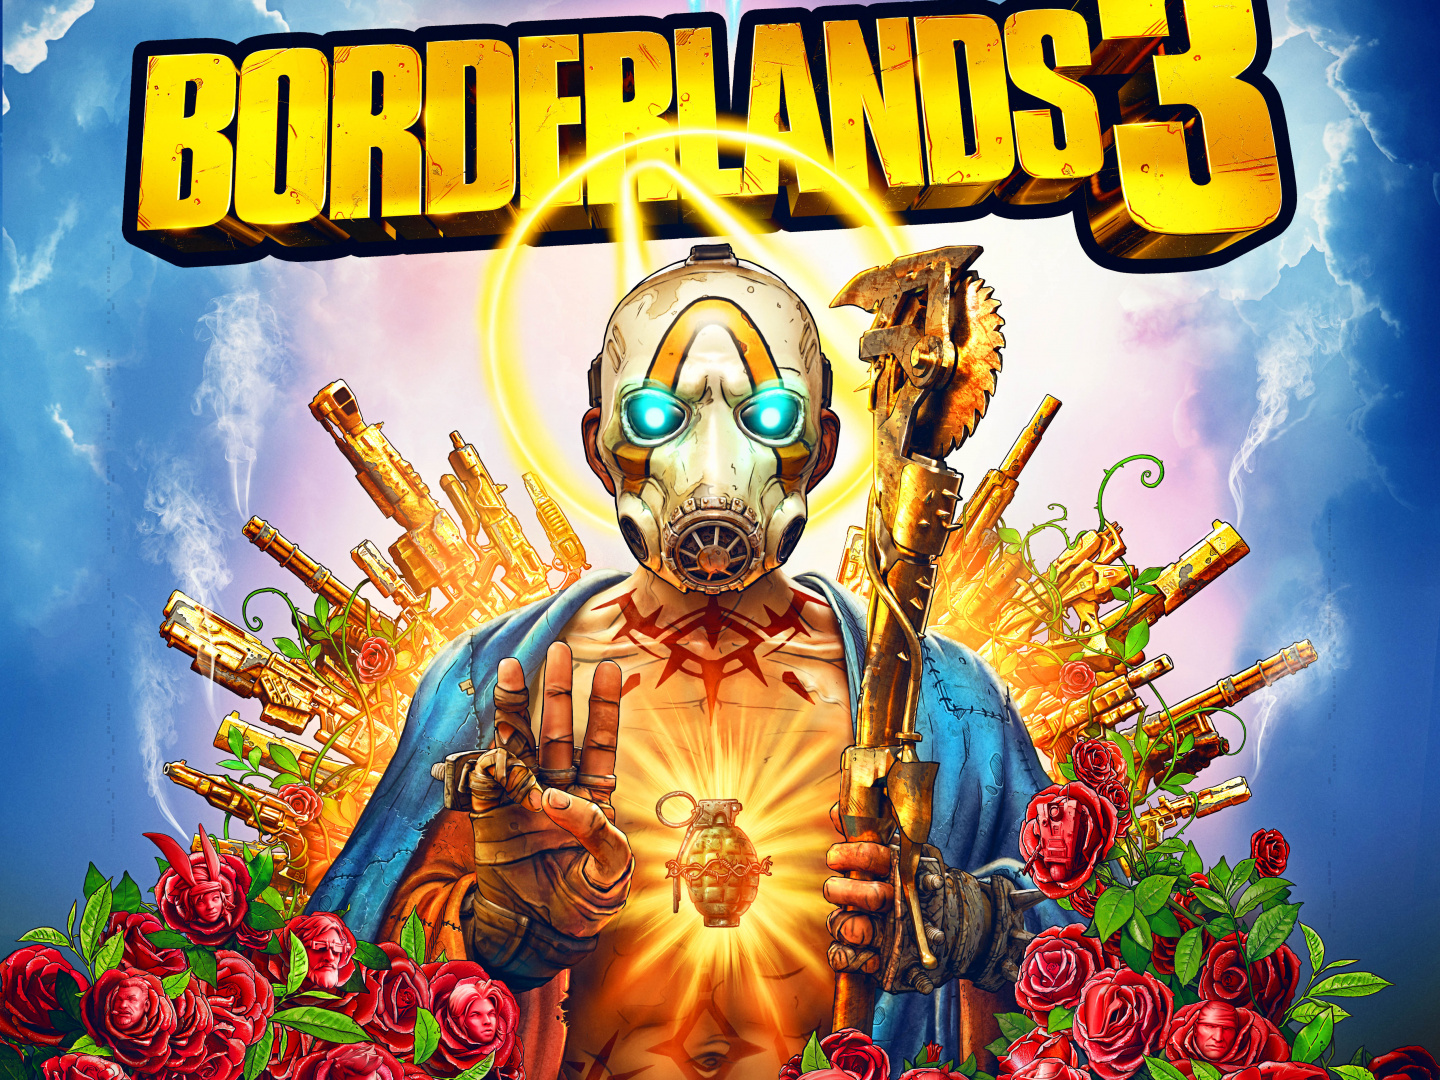 Borderlands 3 Key Art Thumbnail